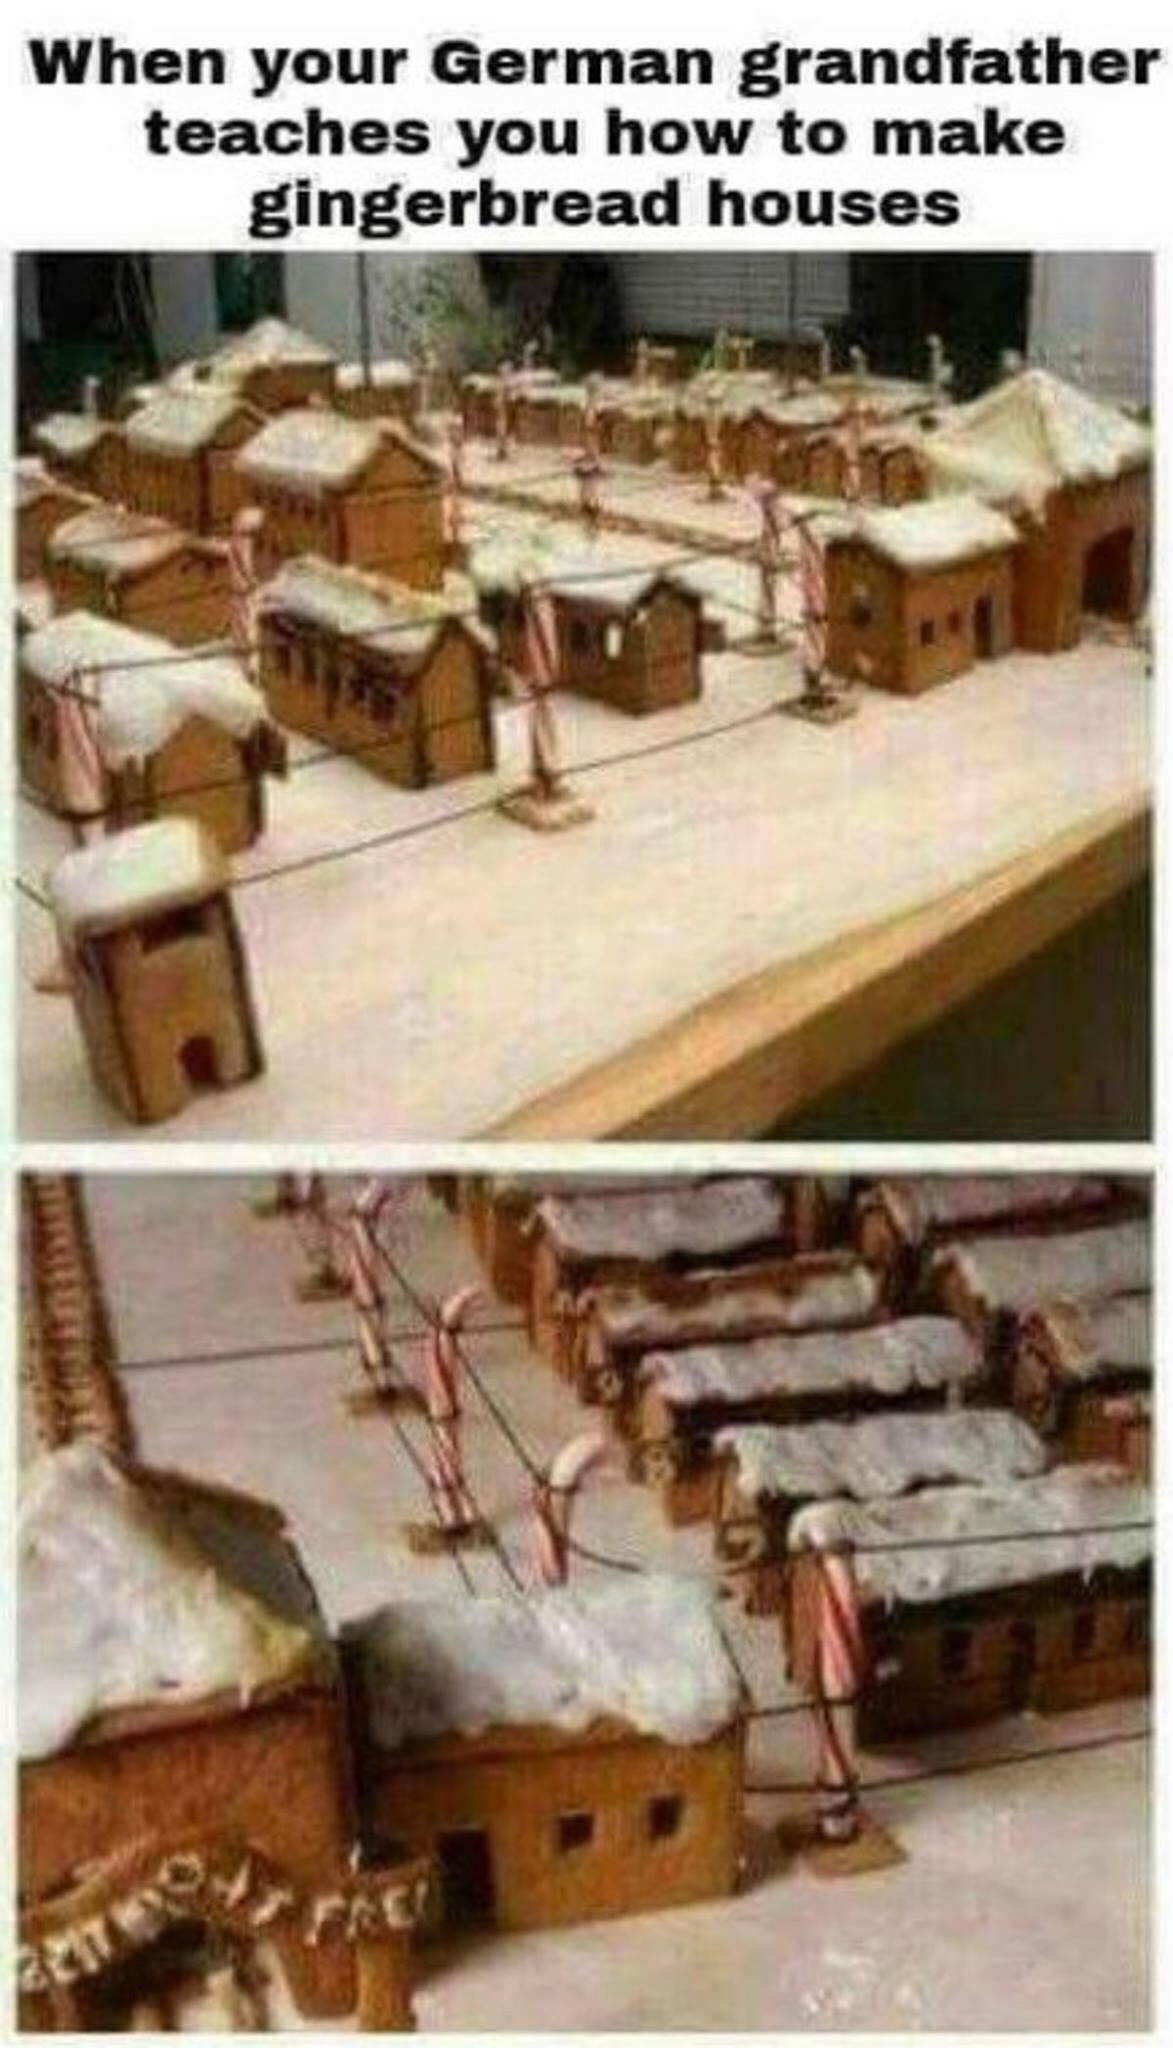 is Anyone making gingerbread houses this year? - meme